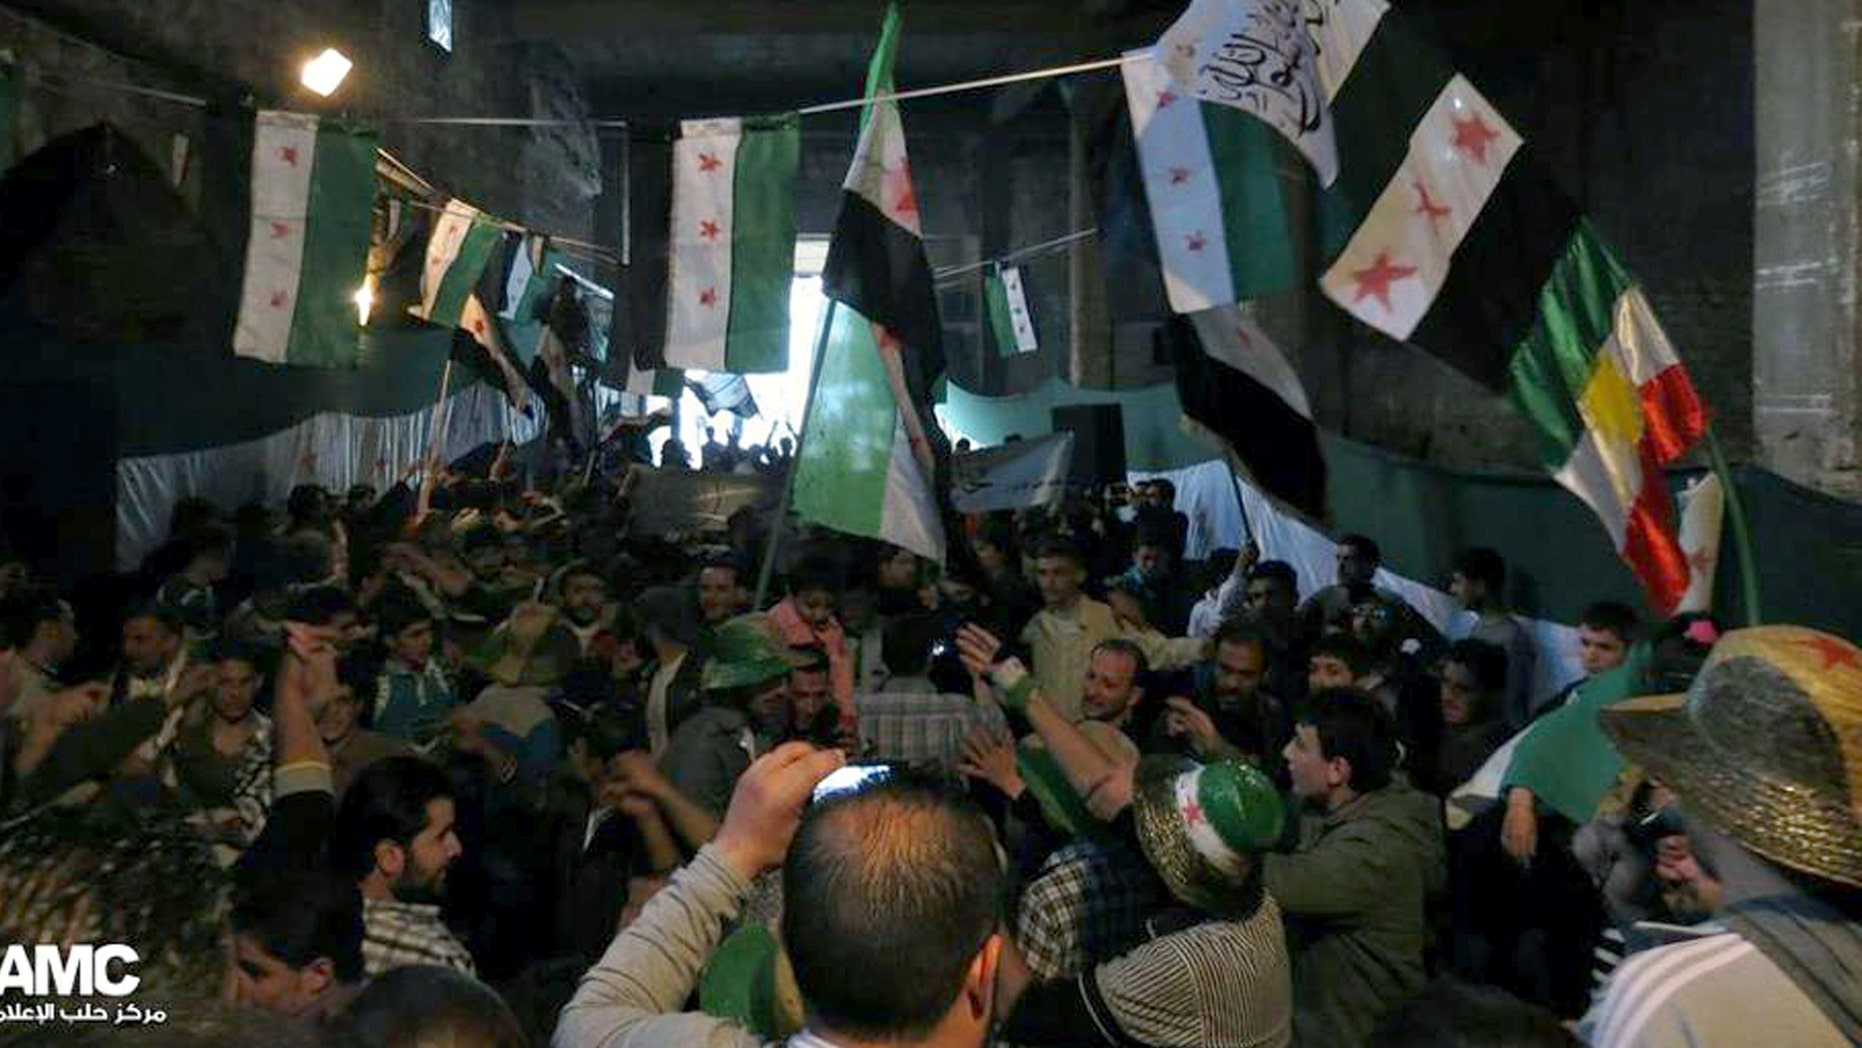 FILE: aPRIL 17, 2013: Anti-Syrian regime protesters holding Syrian revolution flags during a rally. The image provided by Aleppo Media Center AMC has been authenticated based on its contents and other reporting.